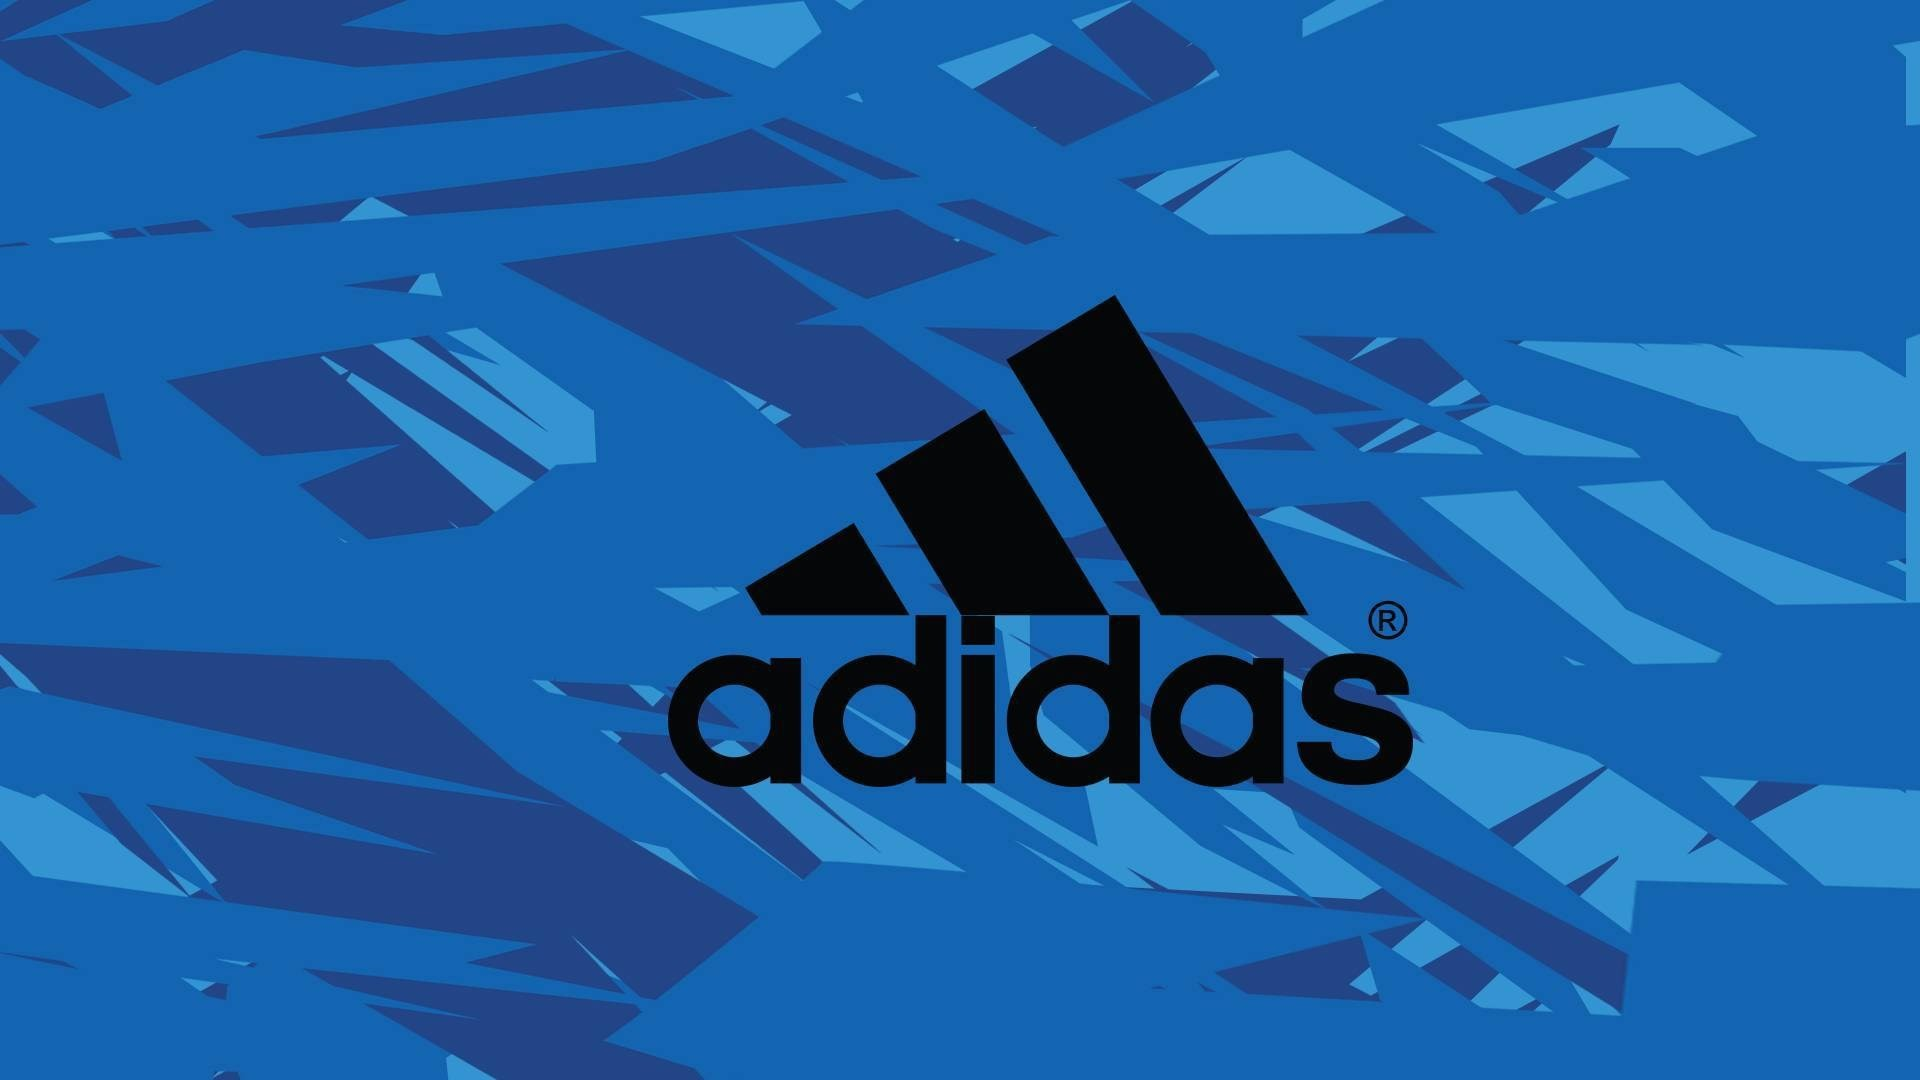 Adidas Wallpapers (76+ images)